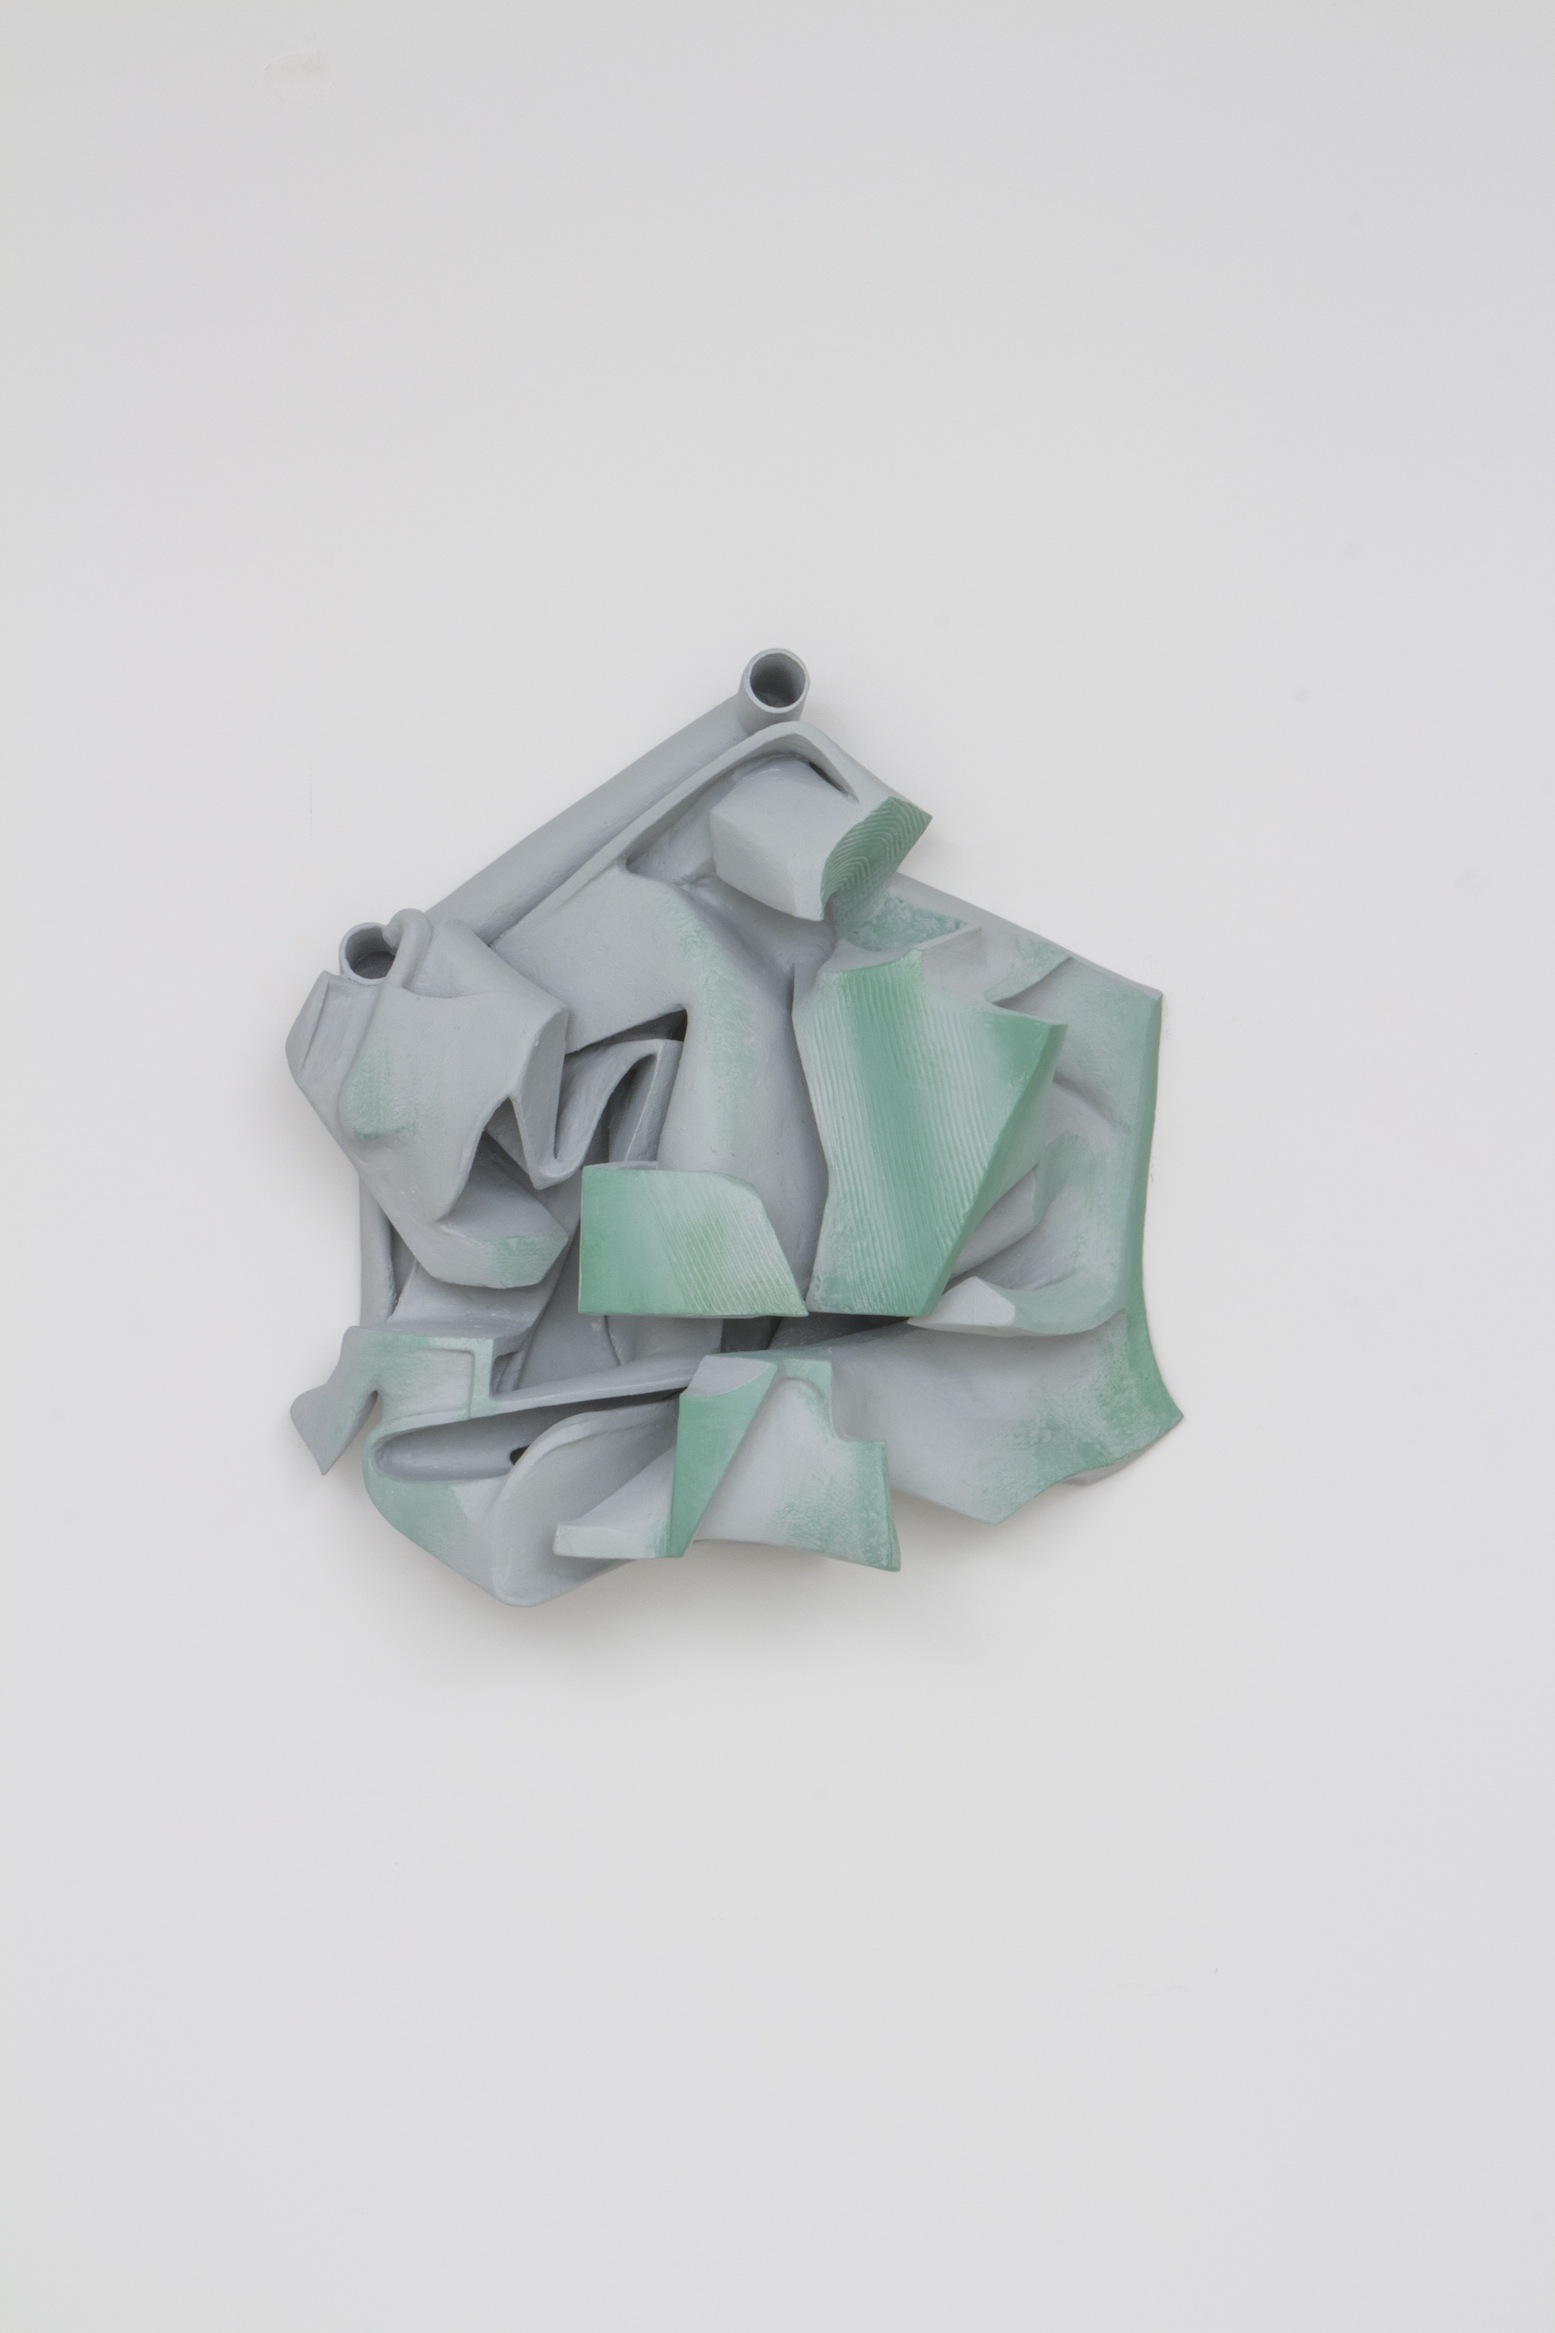 Vincent Fecteau, Untitled, 2014, resin, clay, acrylic paint, 26 x 28 x 8 inches